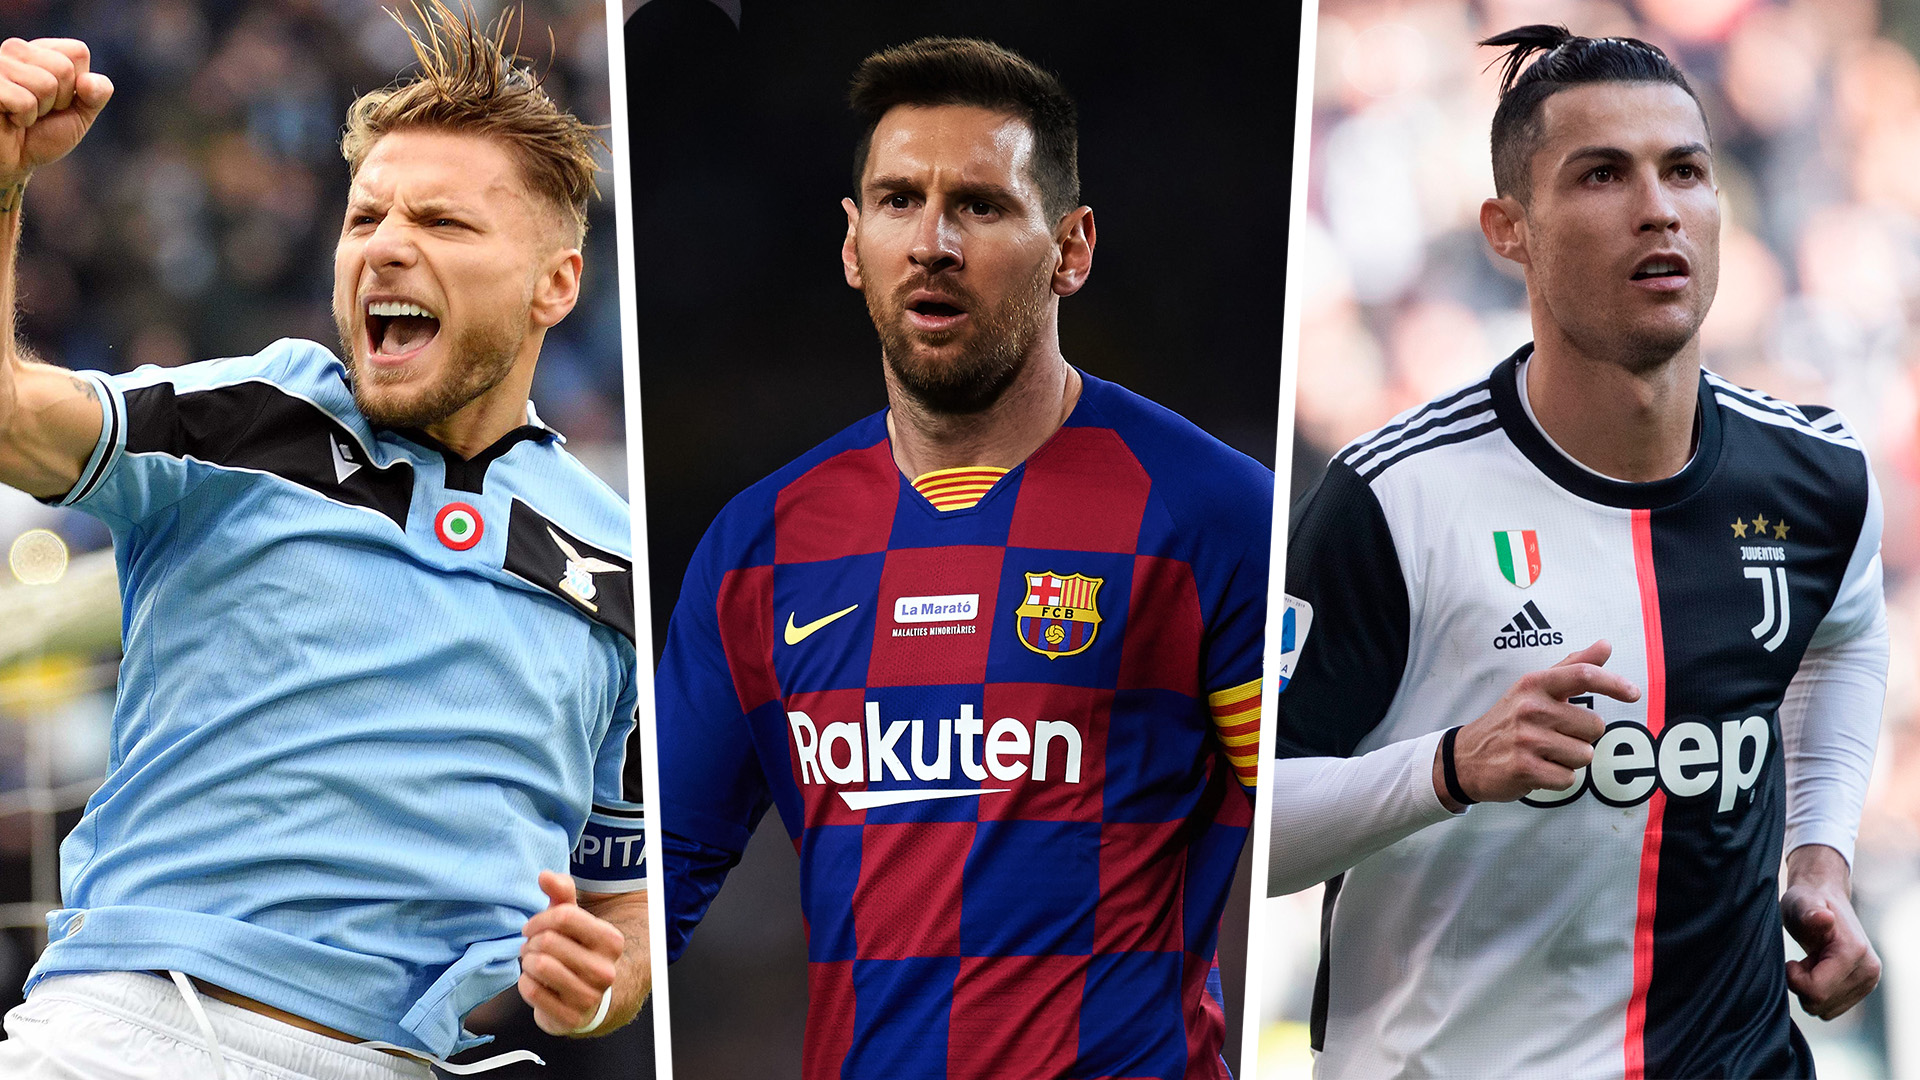 Golden Shoe 2019-20: Messi, Ronaldo & Europe's top scorers